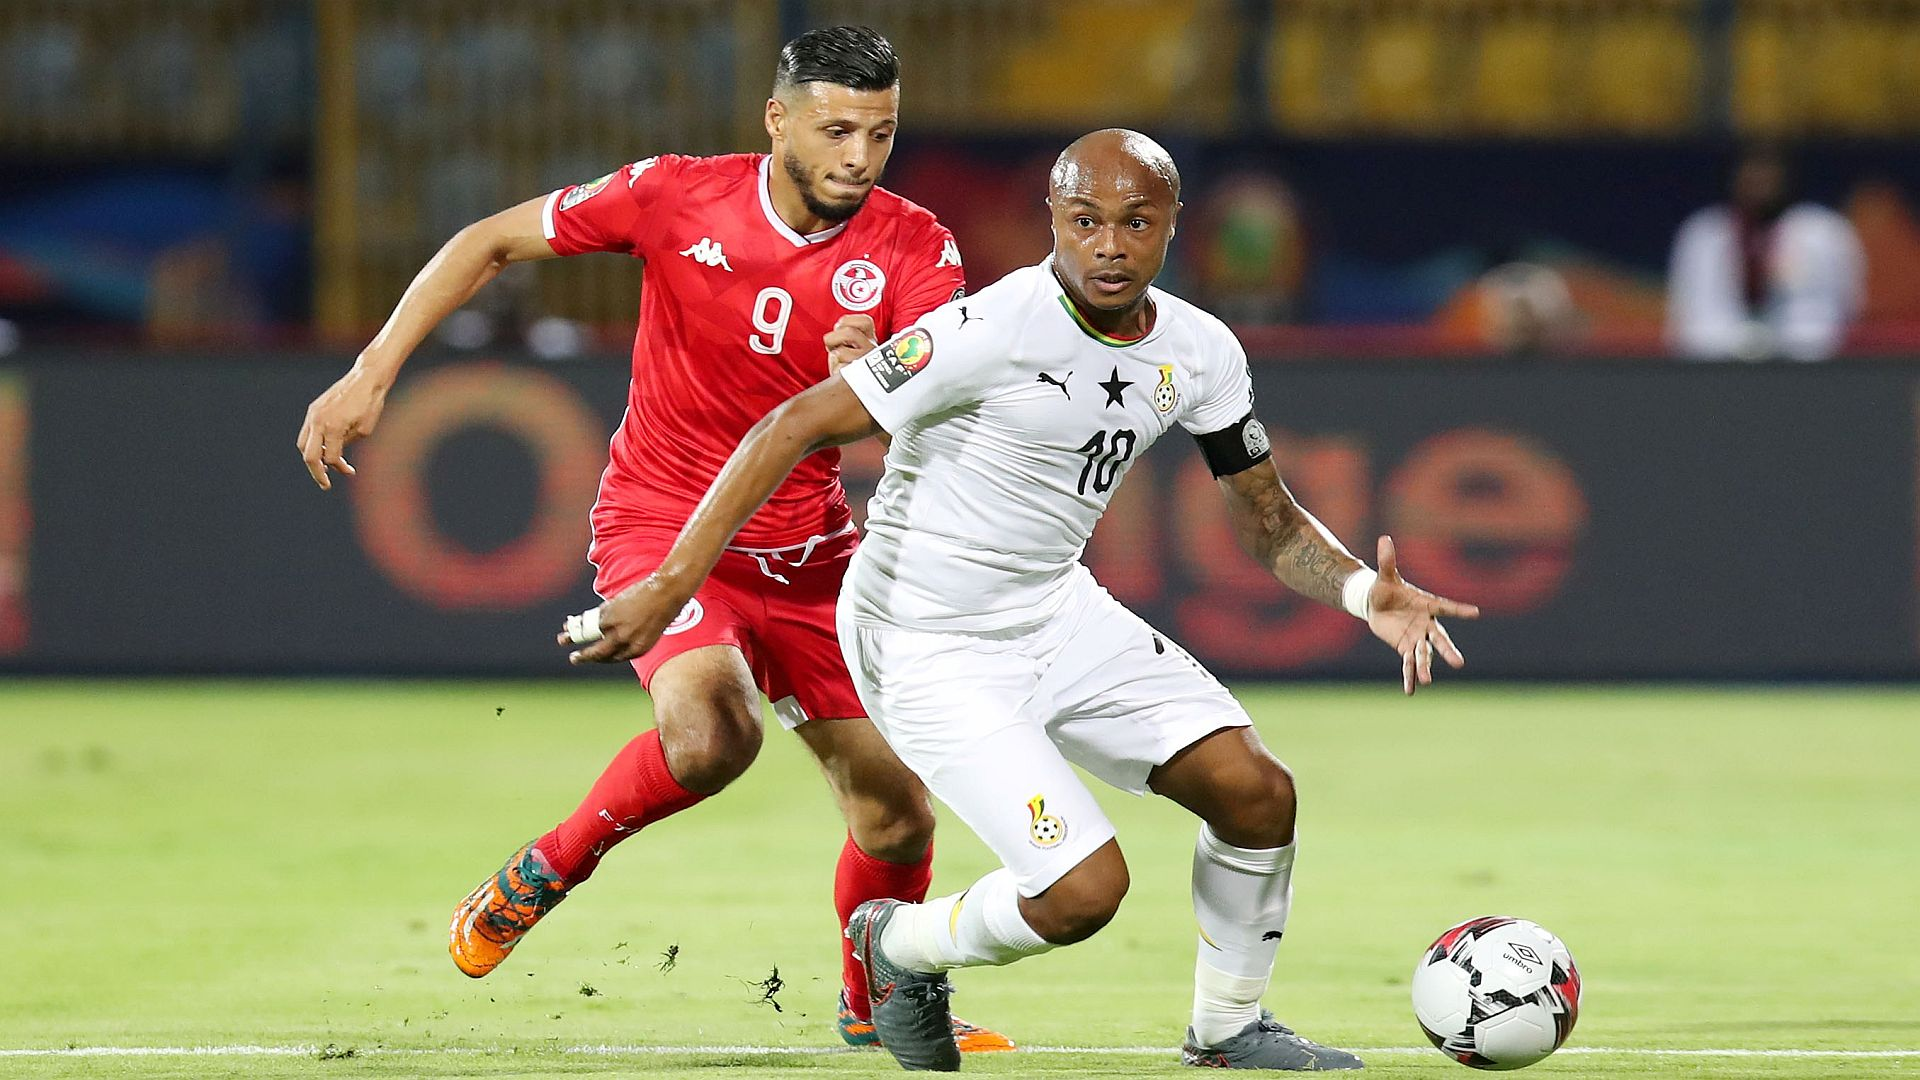 Afcon 2019: I take responsibility for Ghana's failure - Andre Ayew